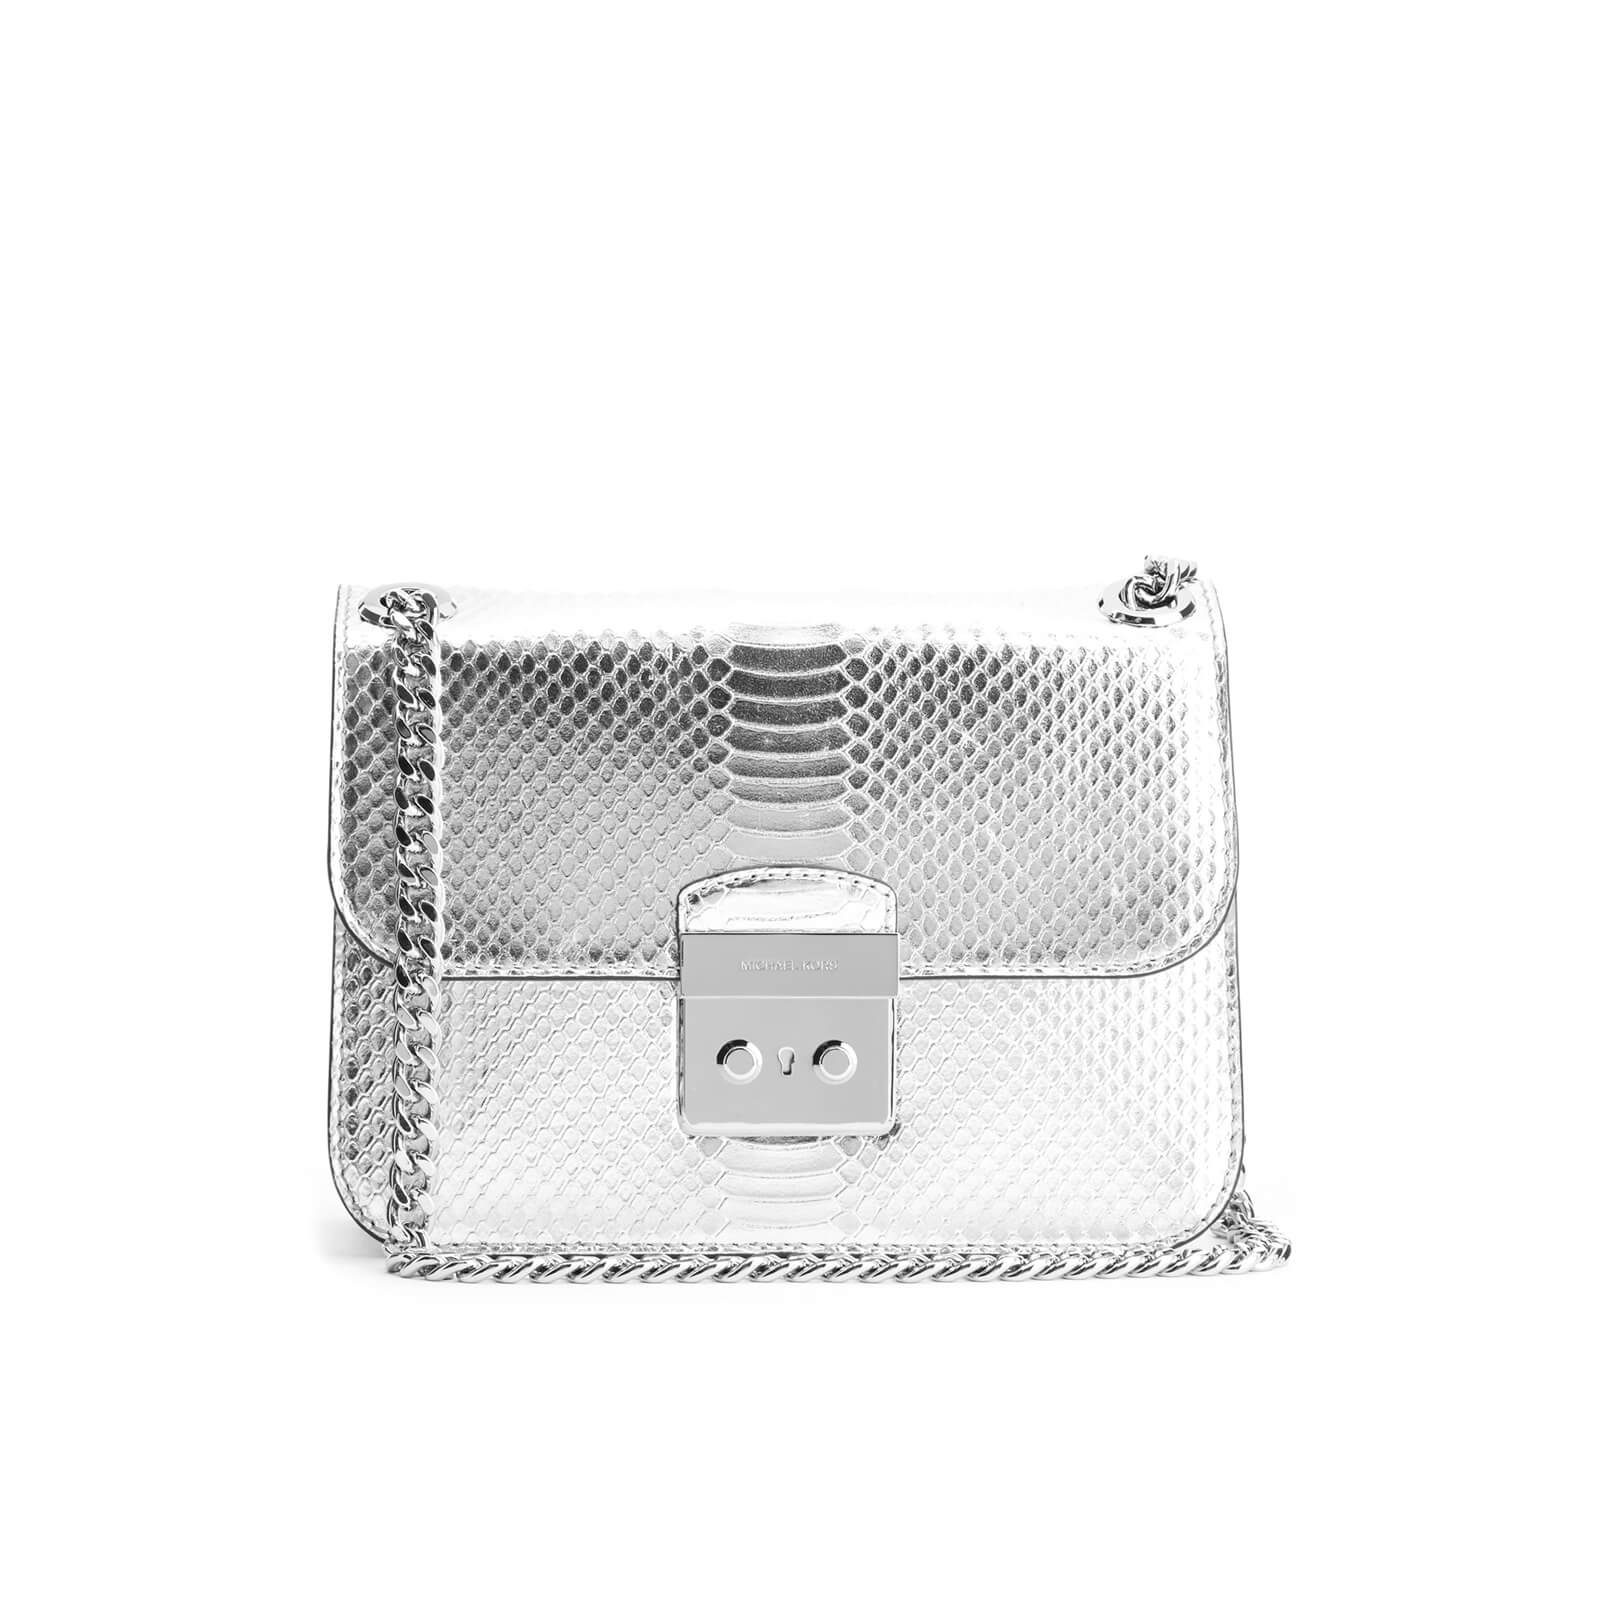 5494501253ebe MICHAEL MICHAEL KORS Women s Sloane Editor Mid Chain Python Shoulder Bag -  Silver - Free UK Delivery over £50